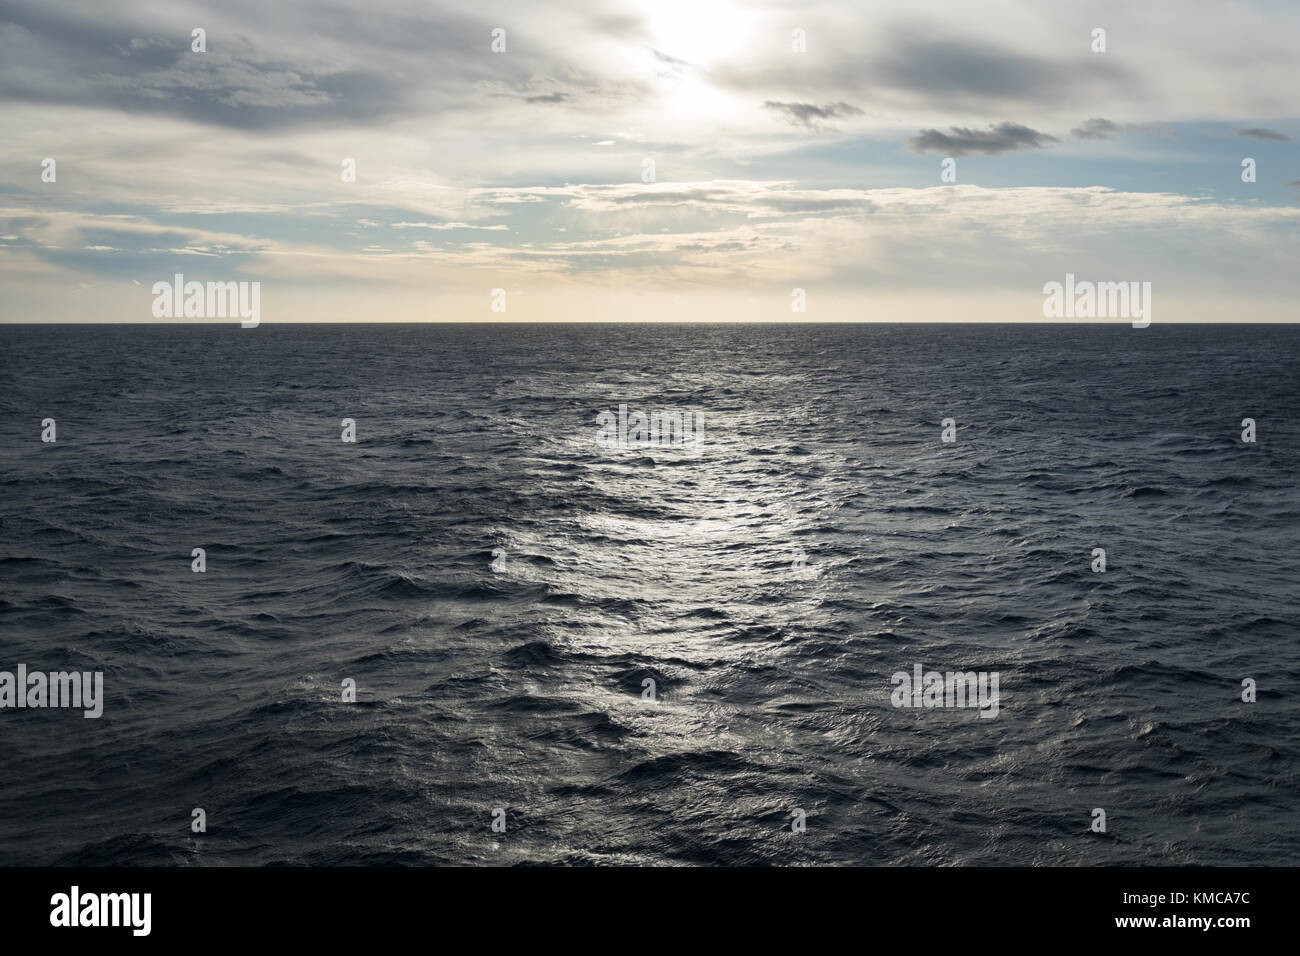 Open water and the sun - Stock Image